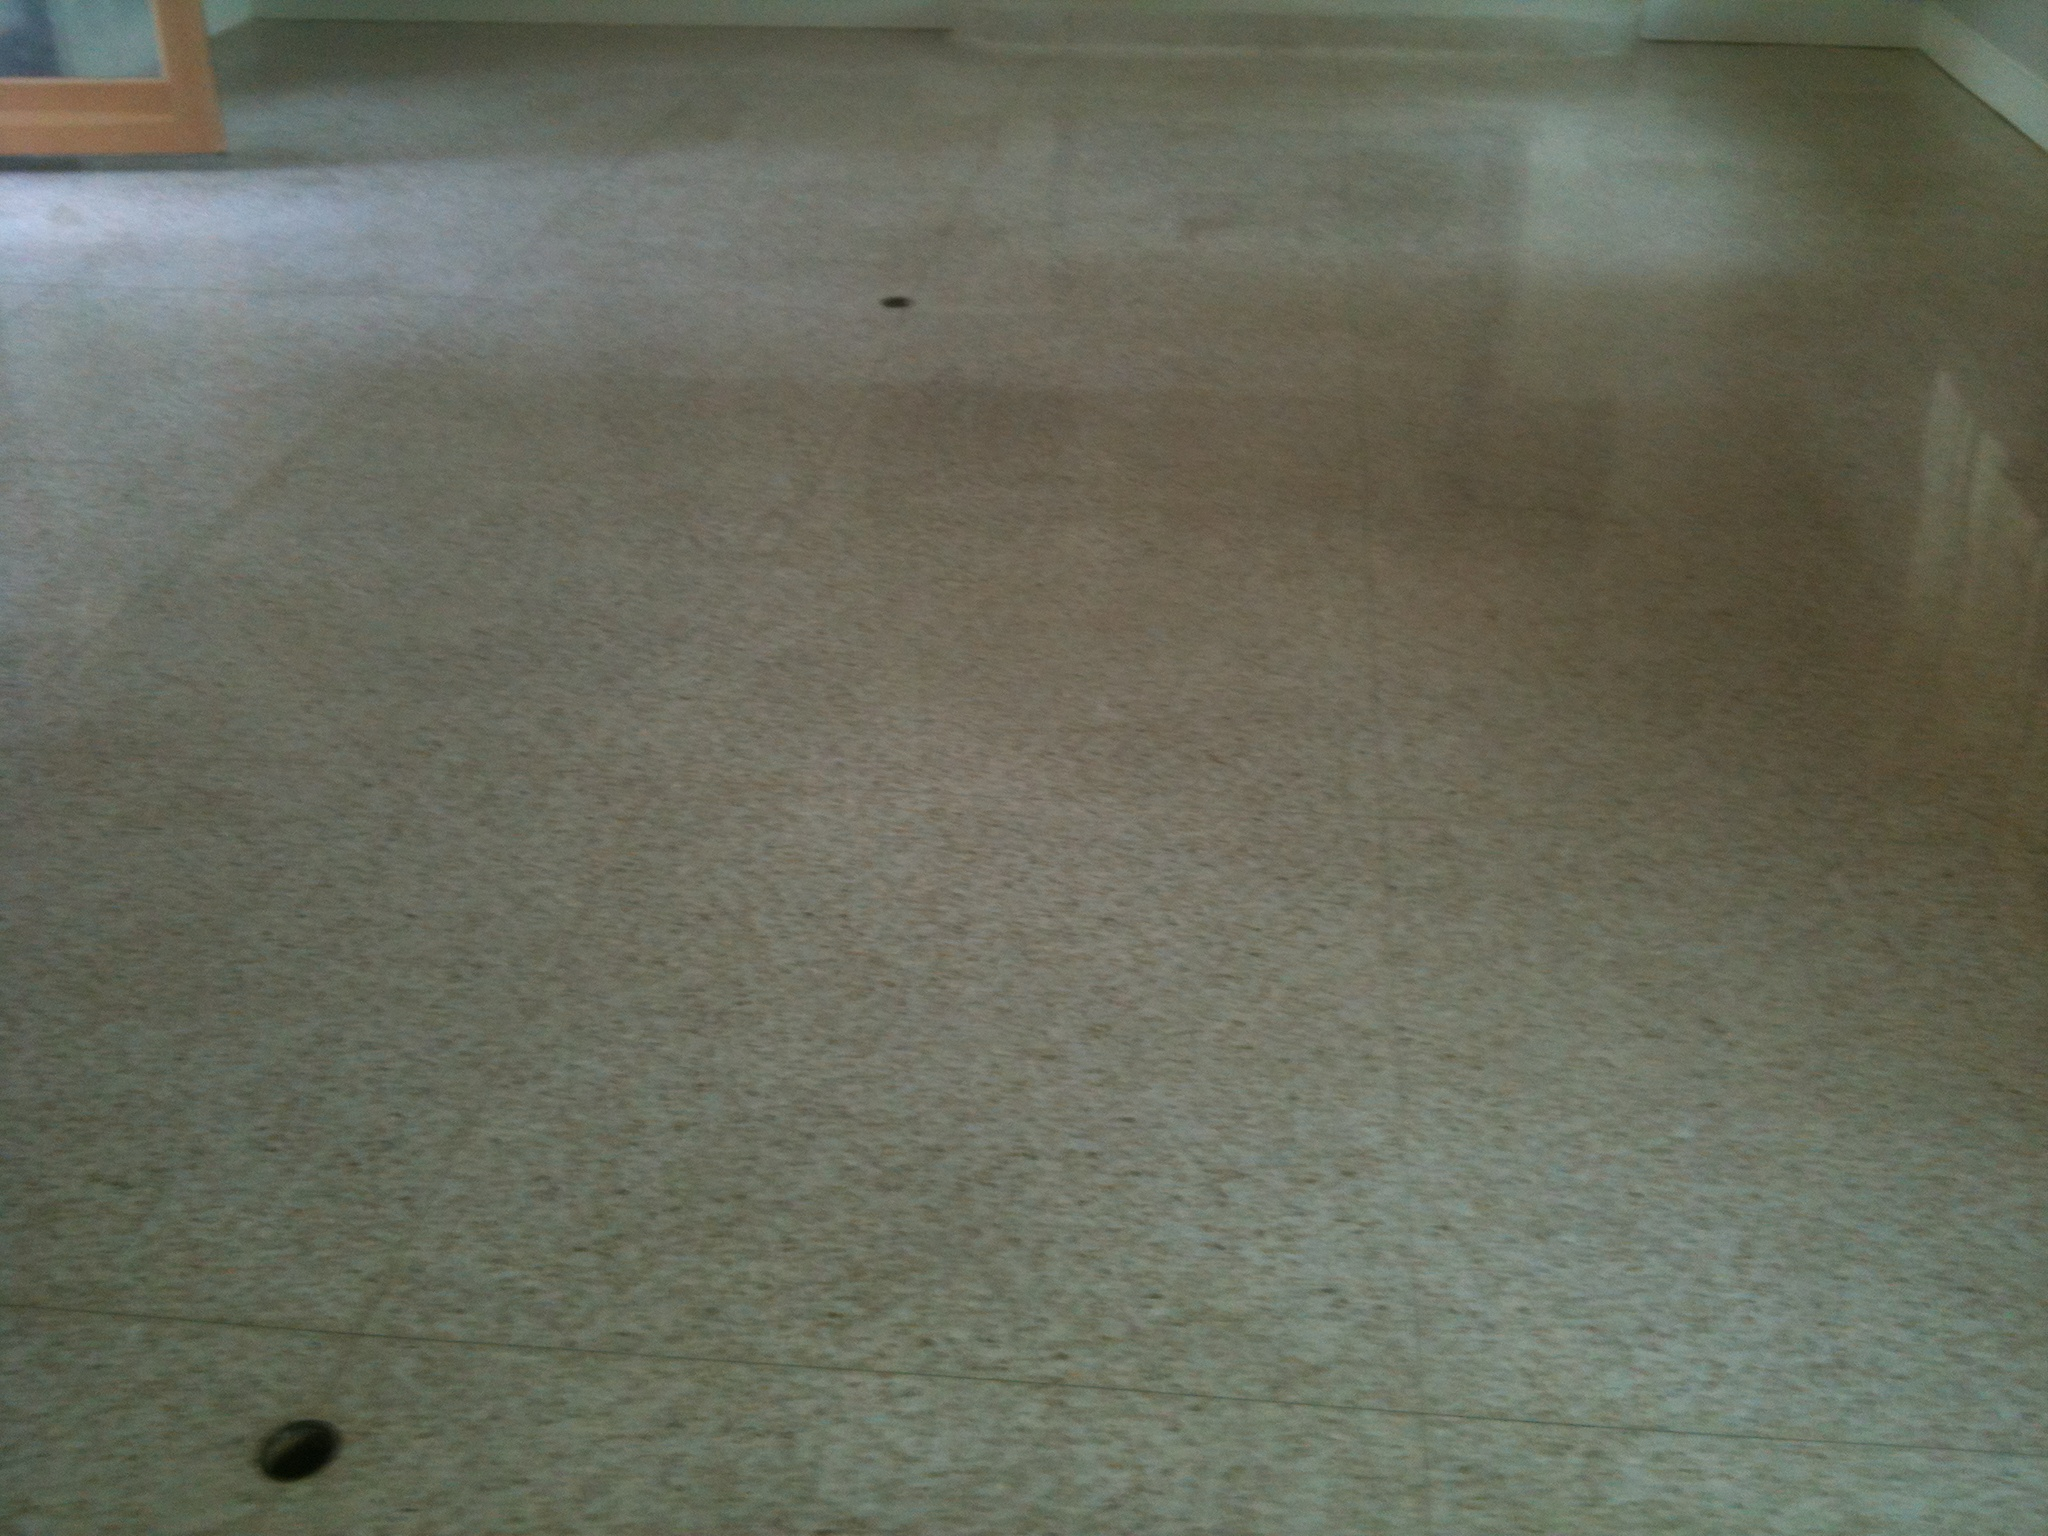 Terrazzo tile stain removal and restoration